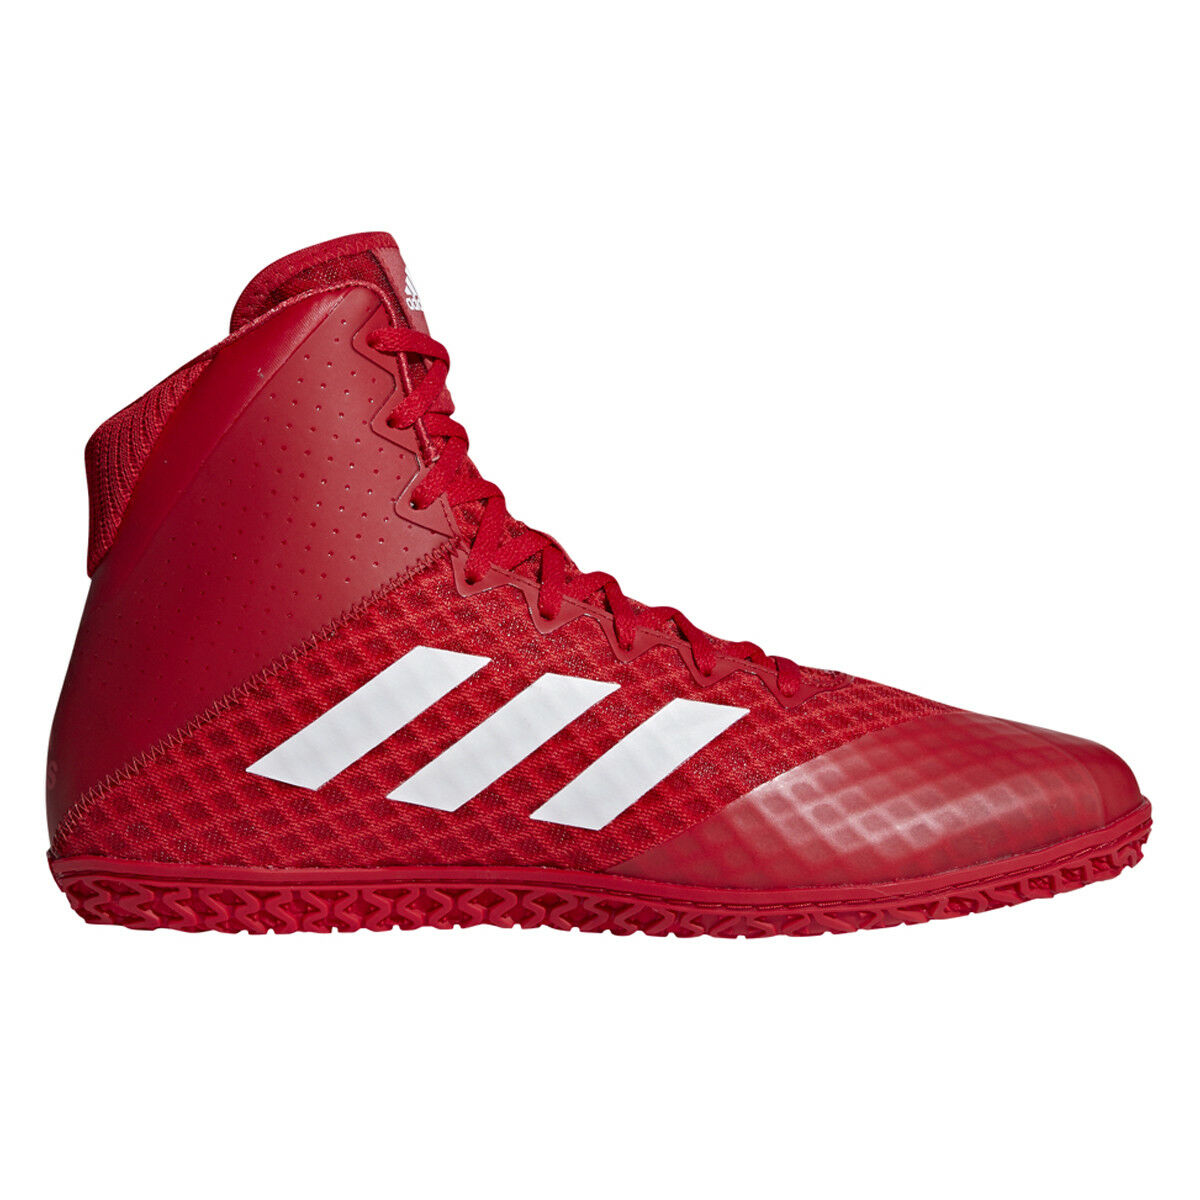 Adidas Mat Wizard 4 Uomo Wrestling Shoes AC6972 - Red, White (NEW) Lists @  129